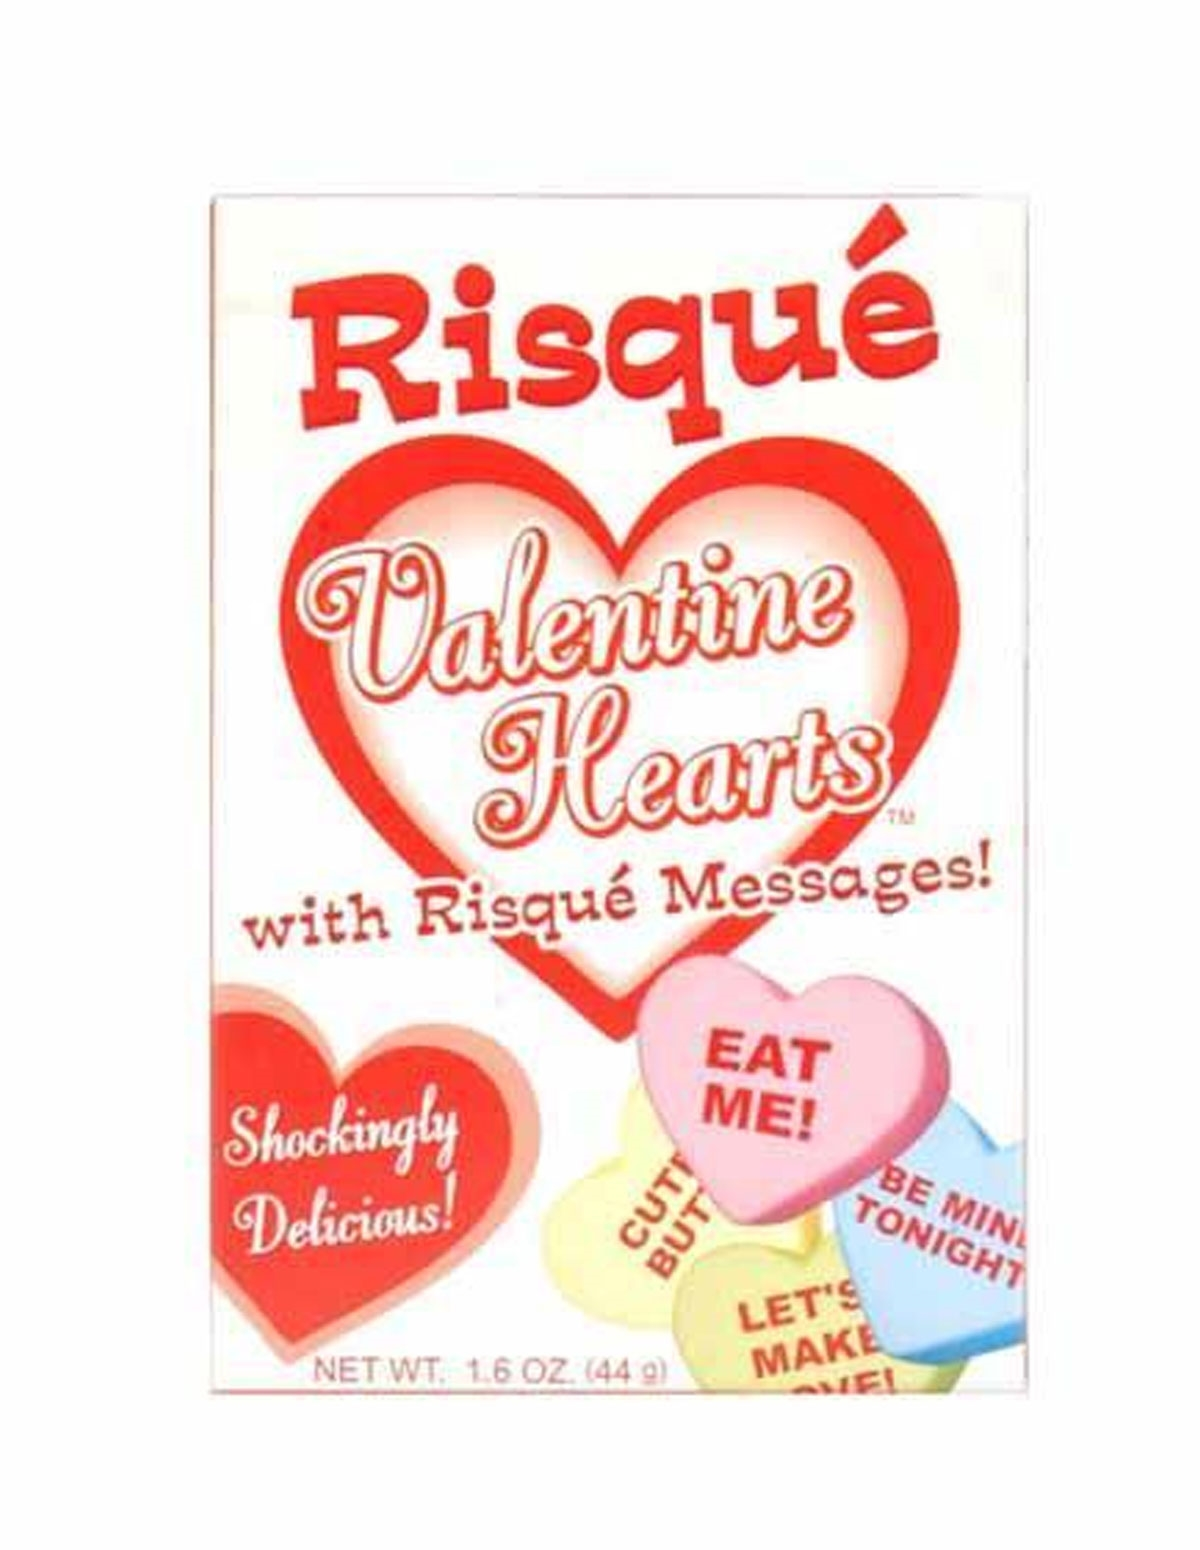 Risque Valentine Heart Candy